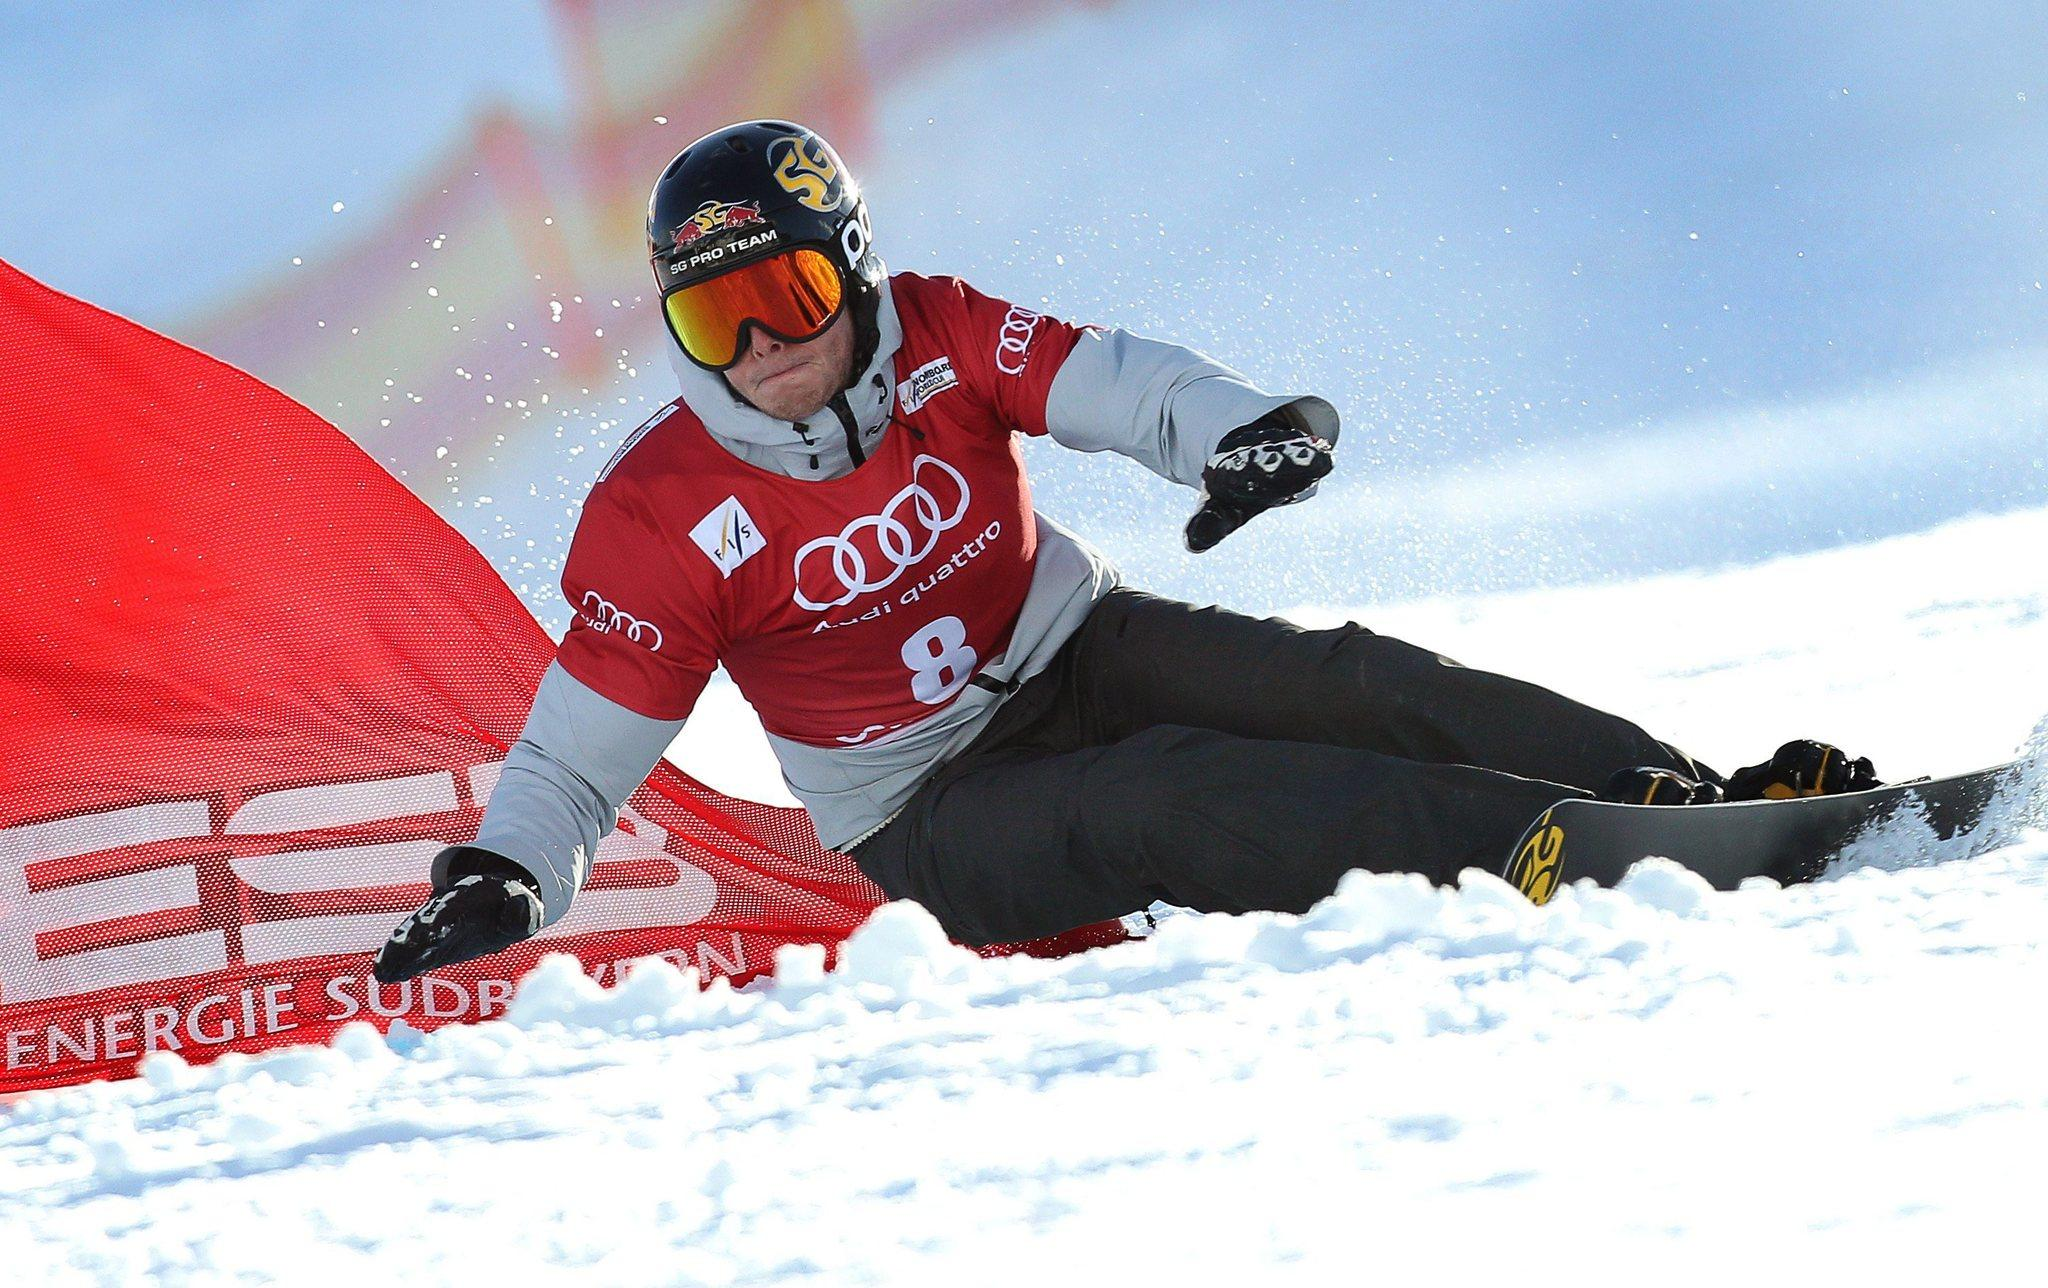 Justin Reiter in action during the men's parallel giant slalom of the Snowboard World Cup. (Karl-Josef Hildenbrand/EPA Photo)